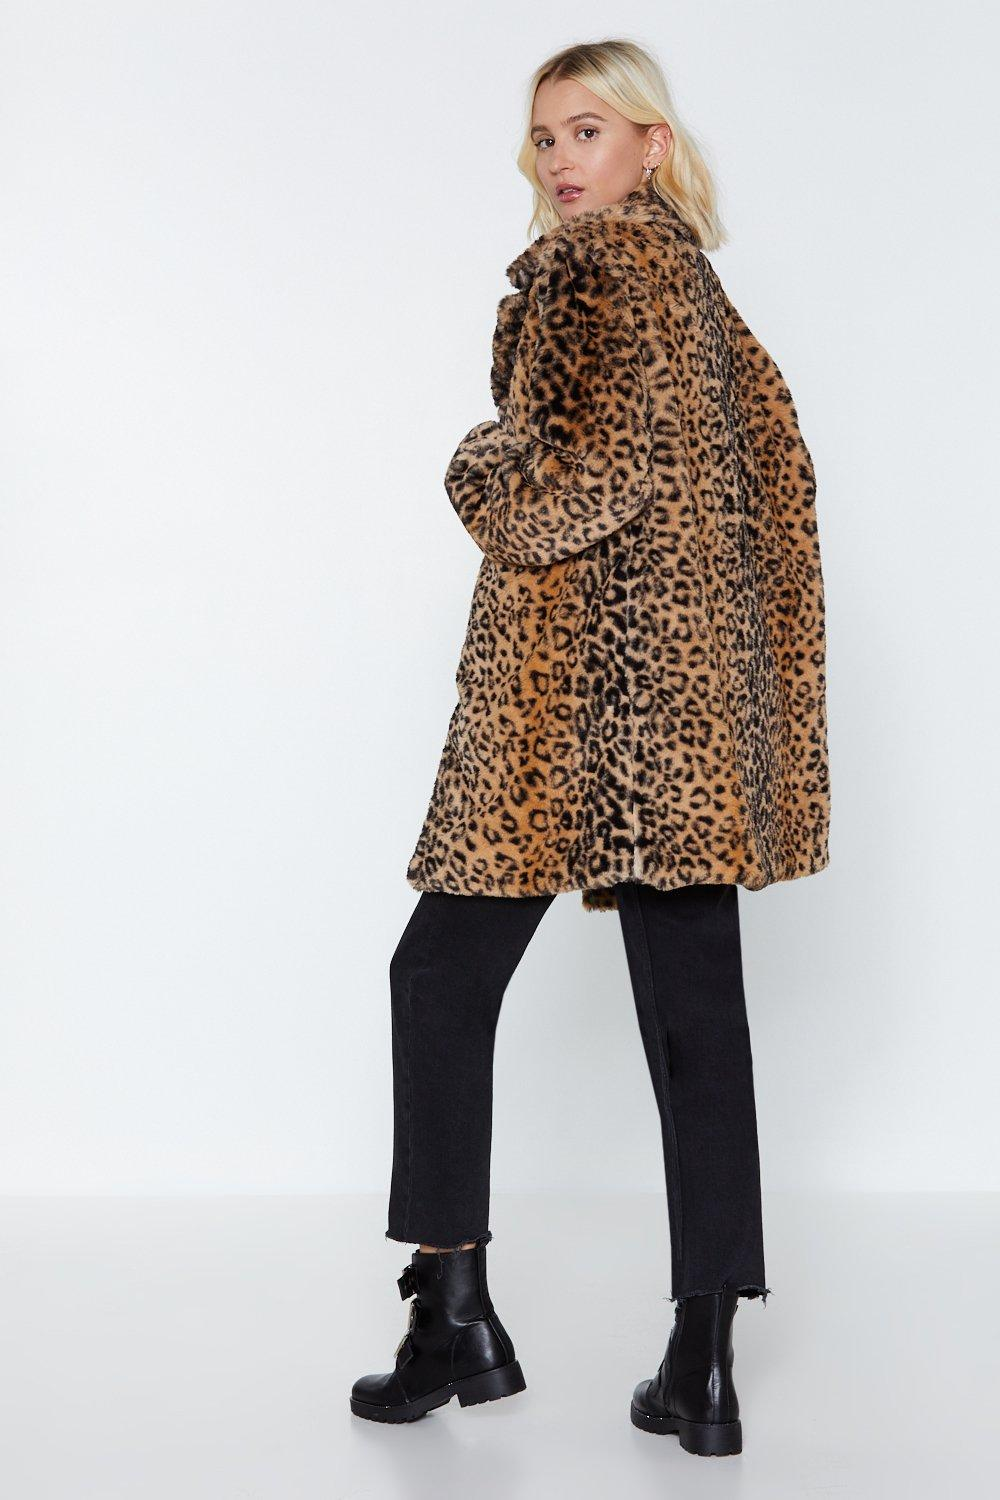 cf939367487b Born to Be Wild Leopard Faux Fur Coat | Shop Clothes at Nasty Gal!